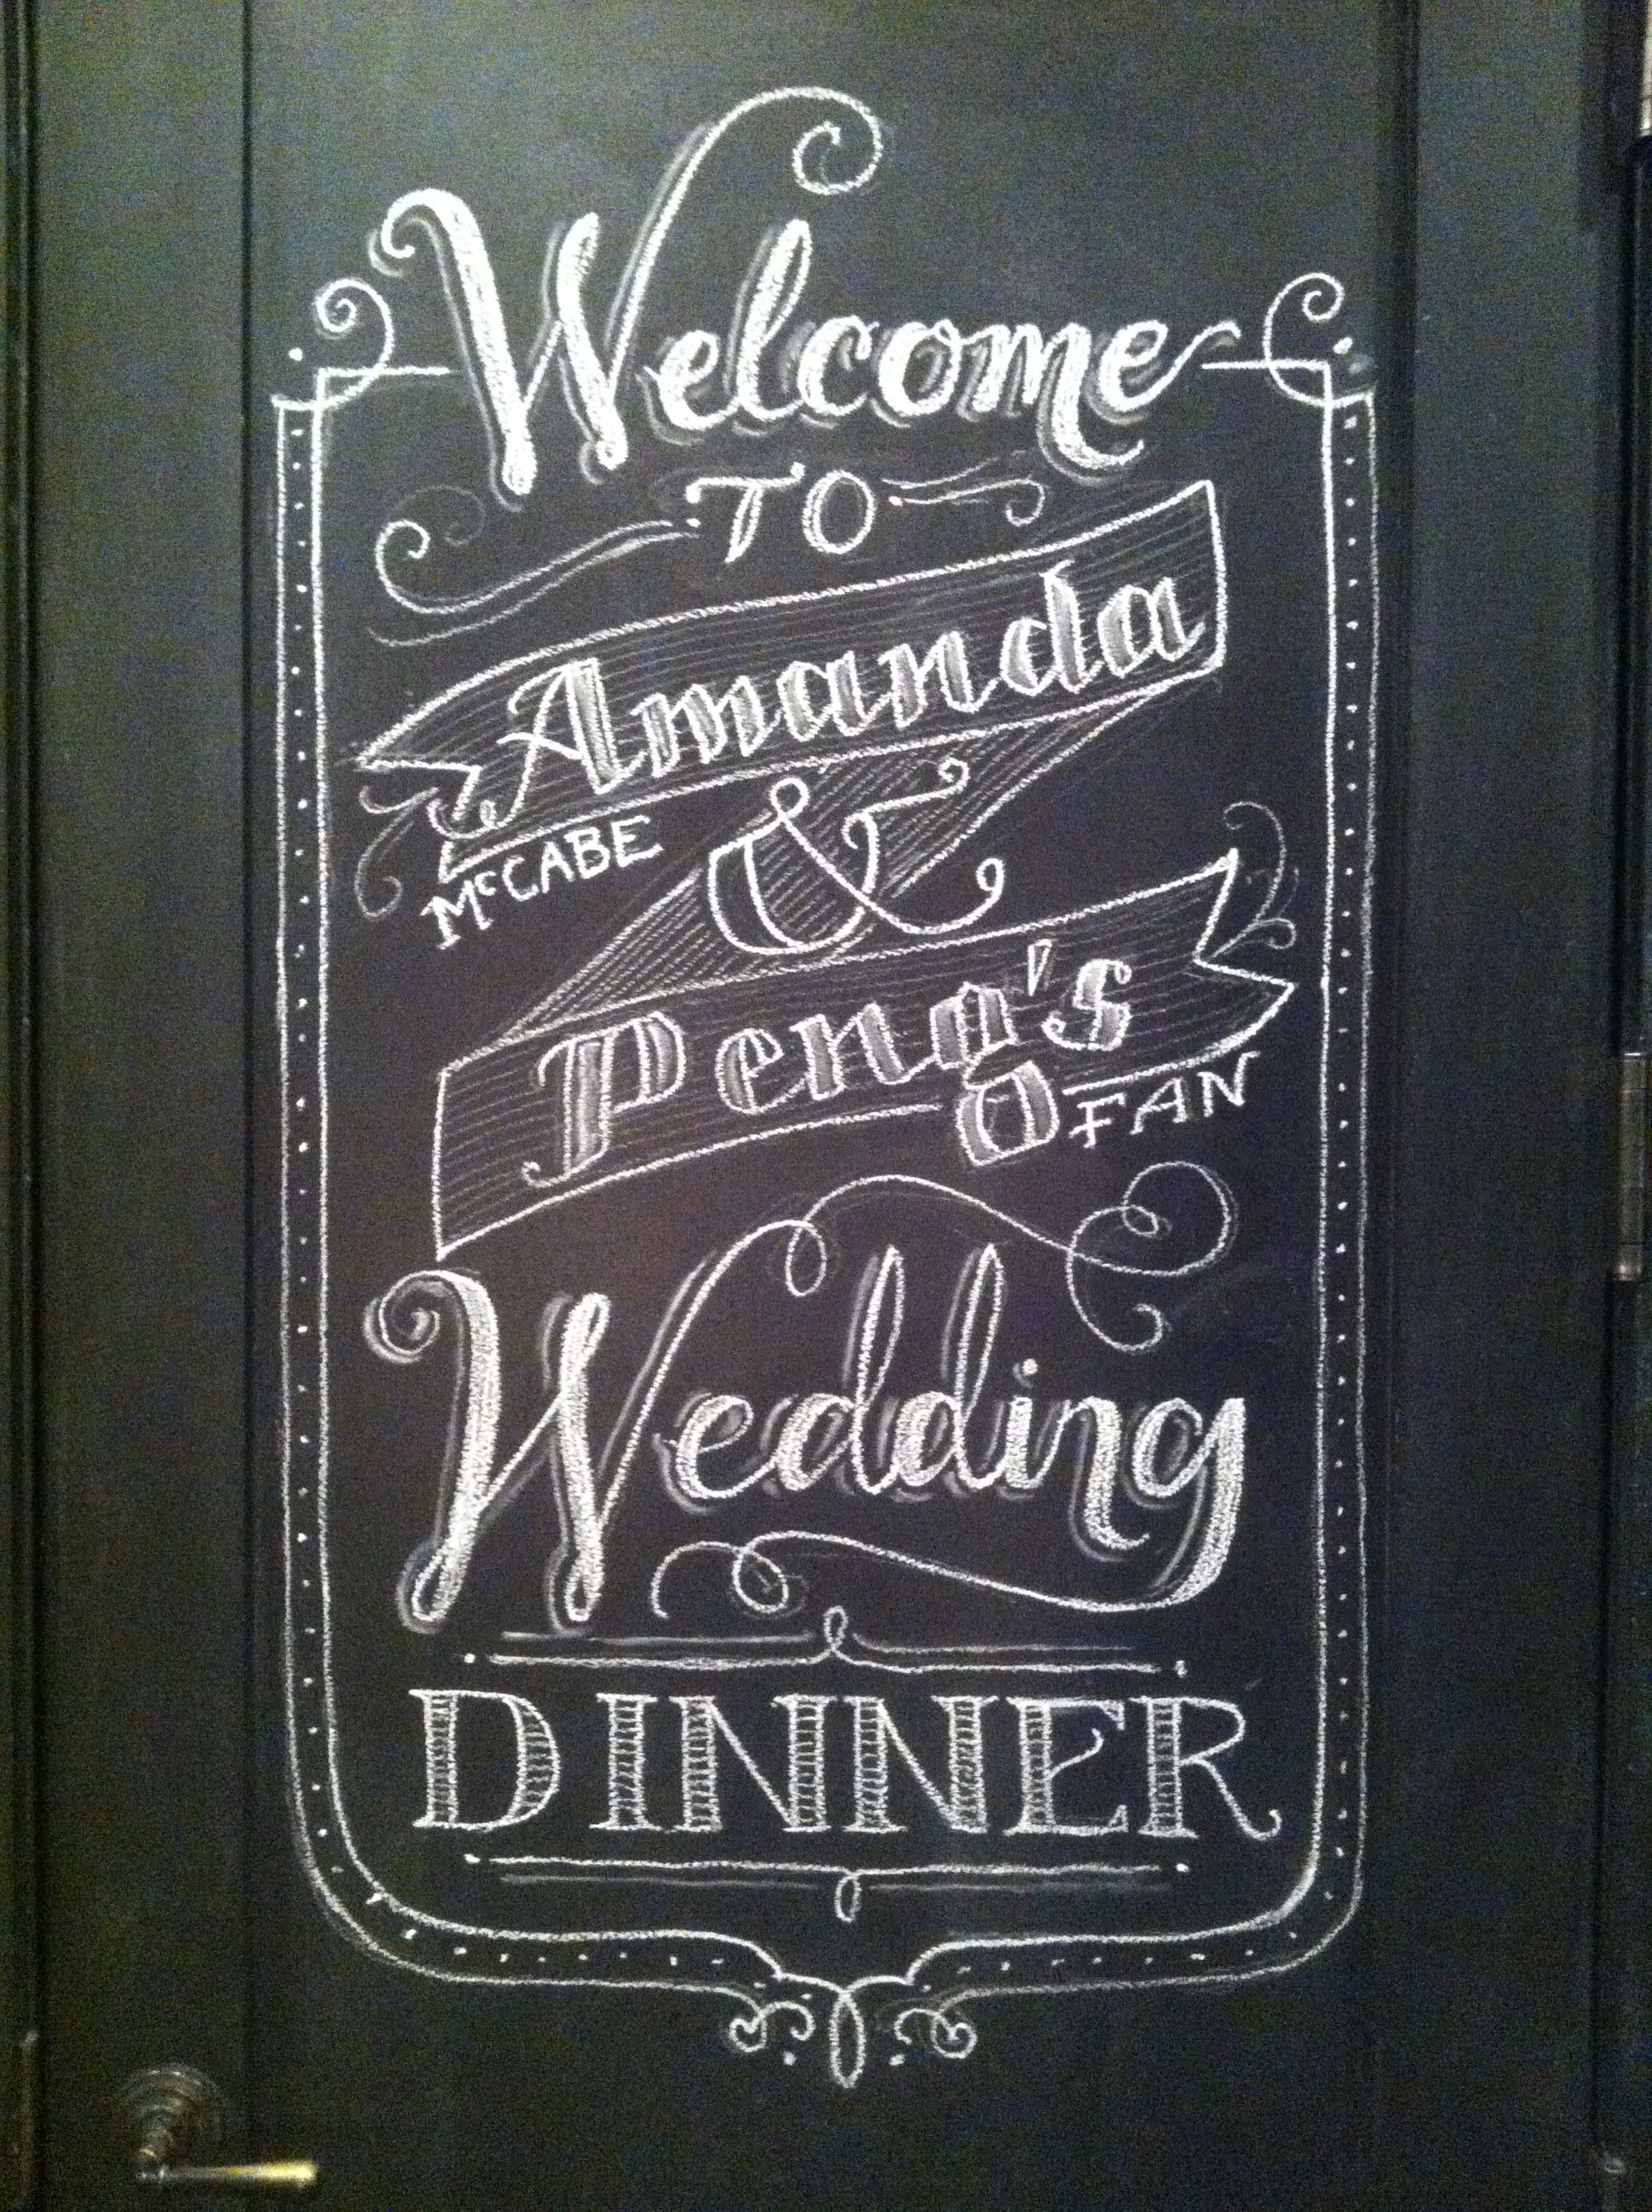 Chalkboard Welcome Wedding Wall For Amanda Peng At Haven S